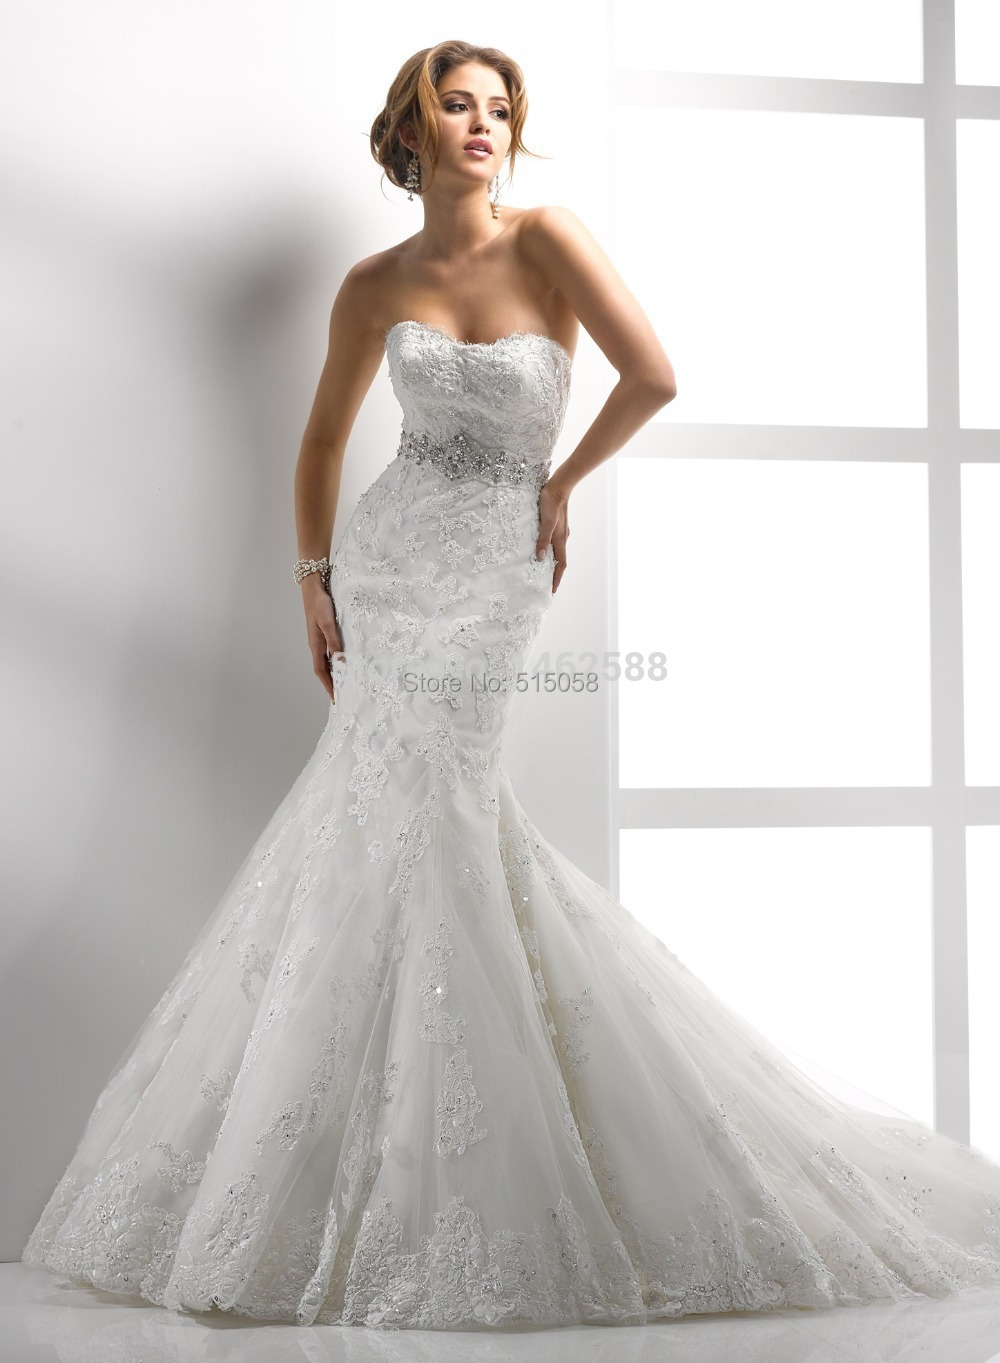 Wedding Dress With Bling Lace